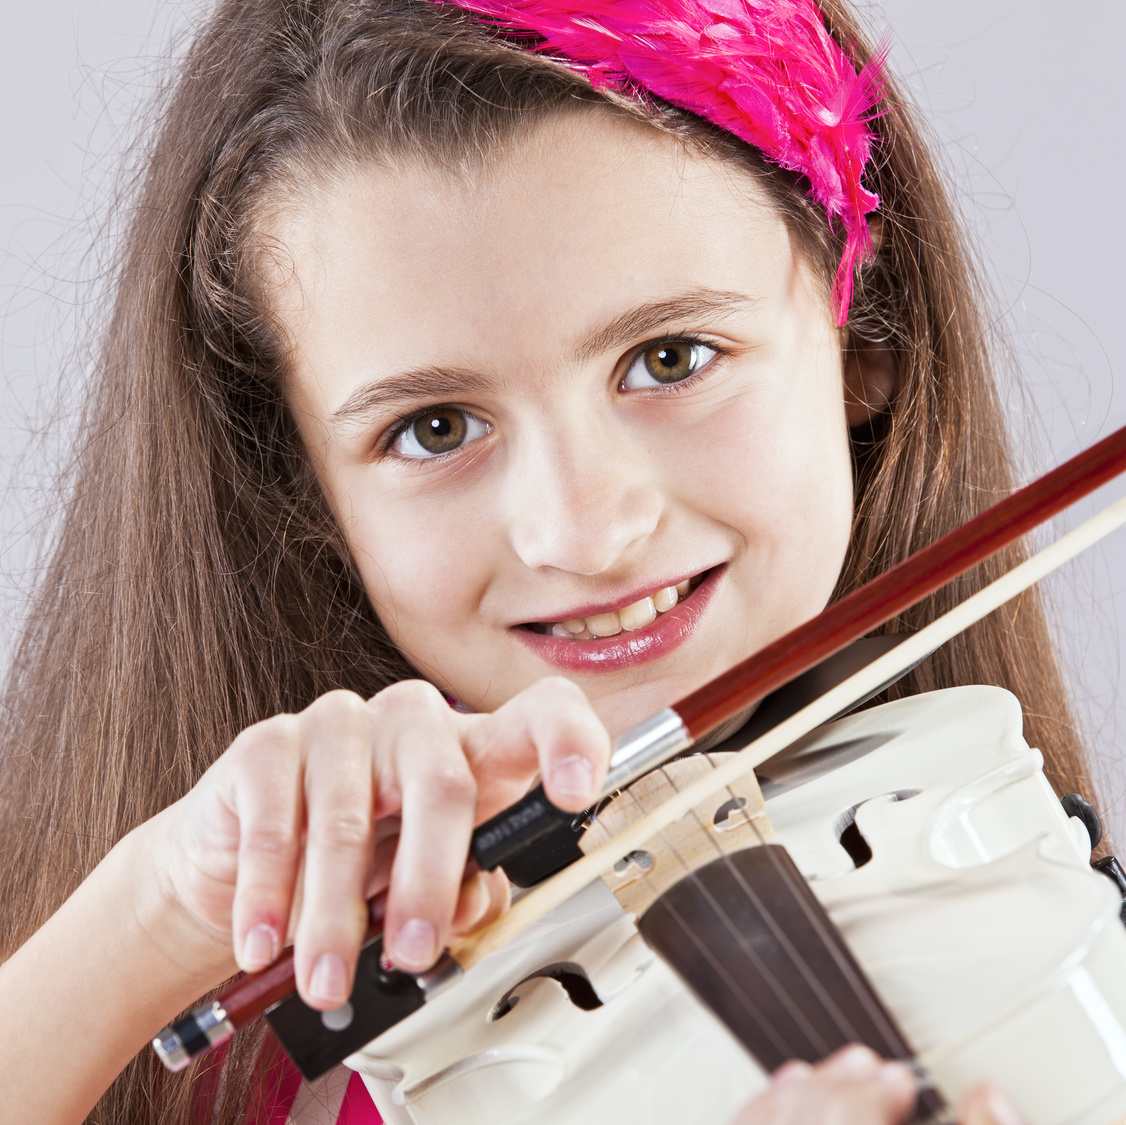 Female child playing the violin with gray background